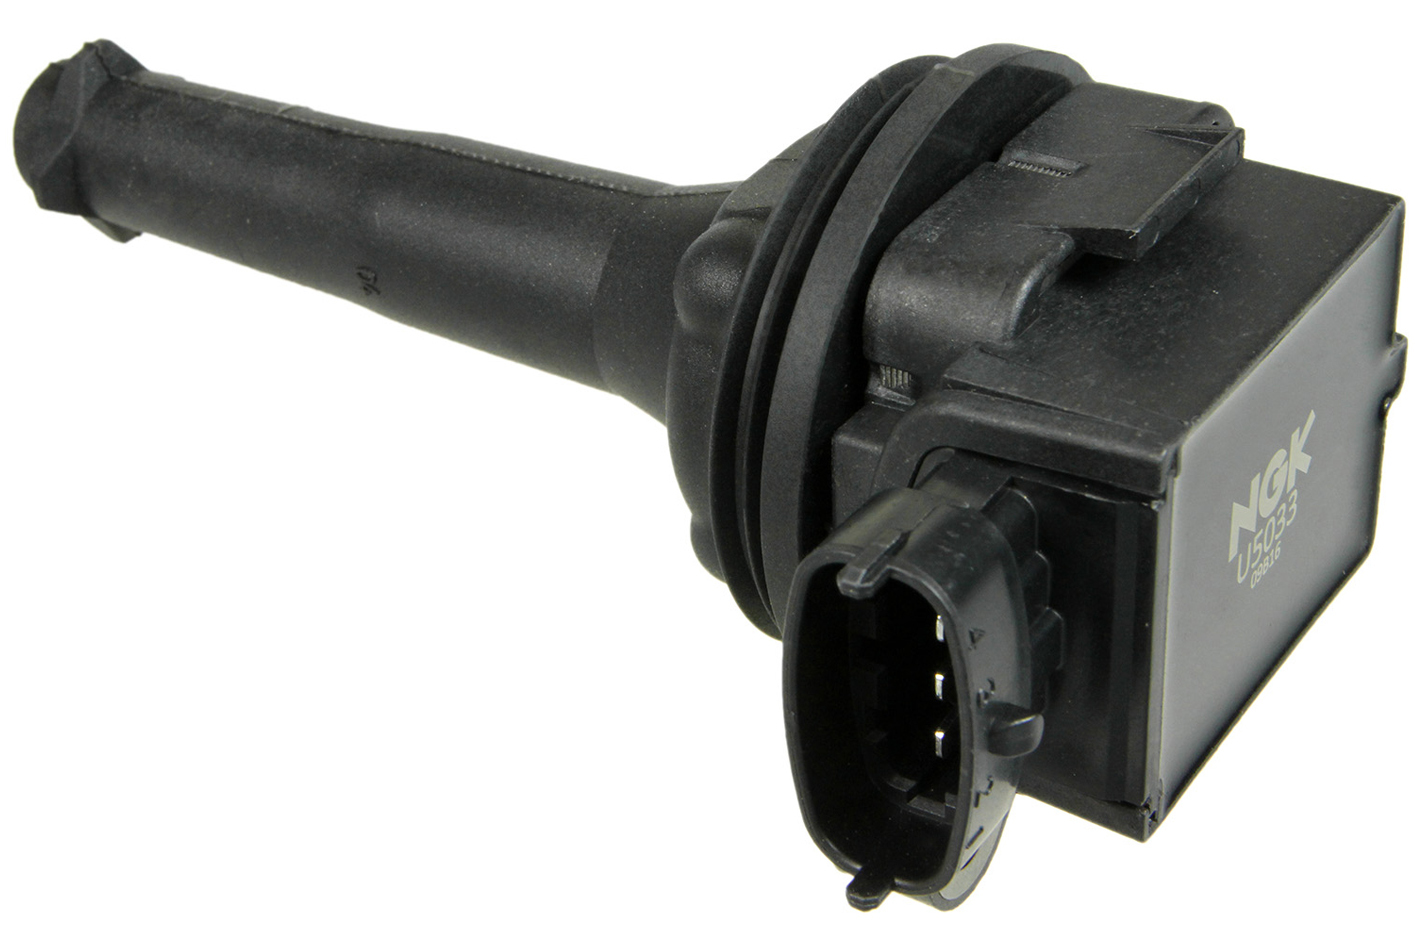 NGK U5033 Ignition Coil Pack, Coil-On-Plug, OE Specs, Black, Each